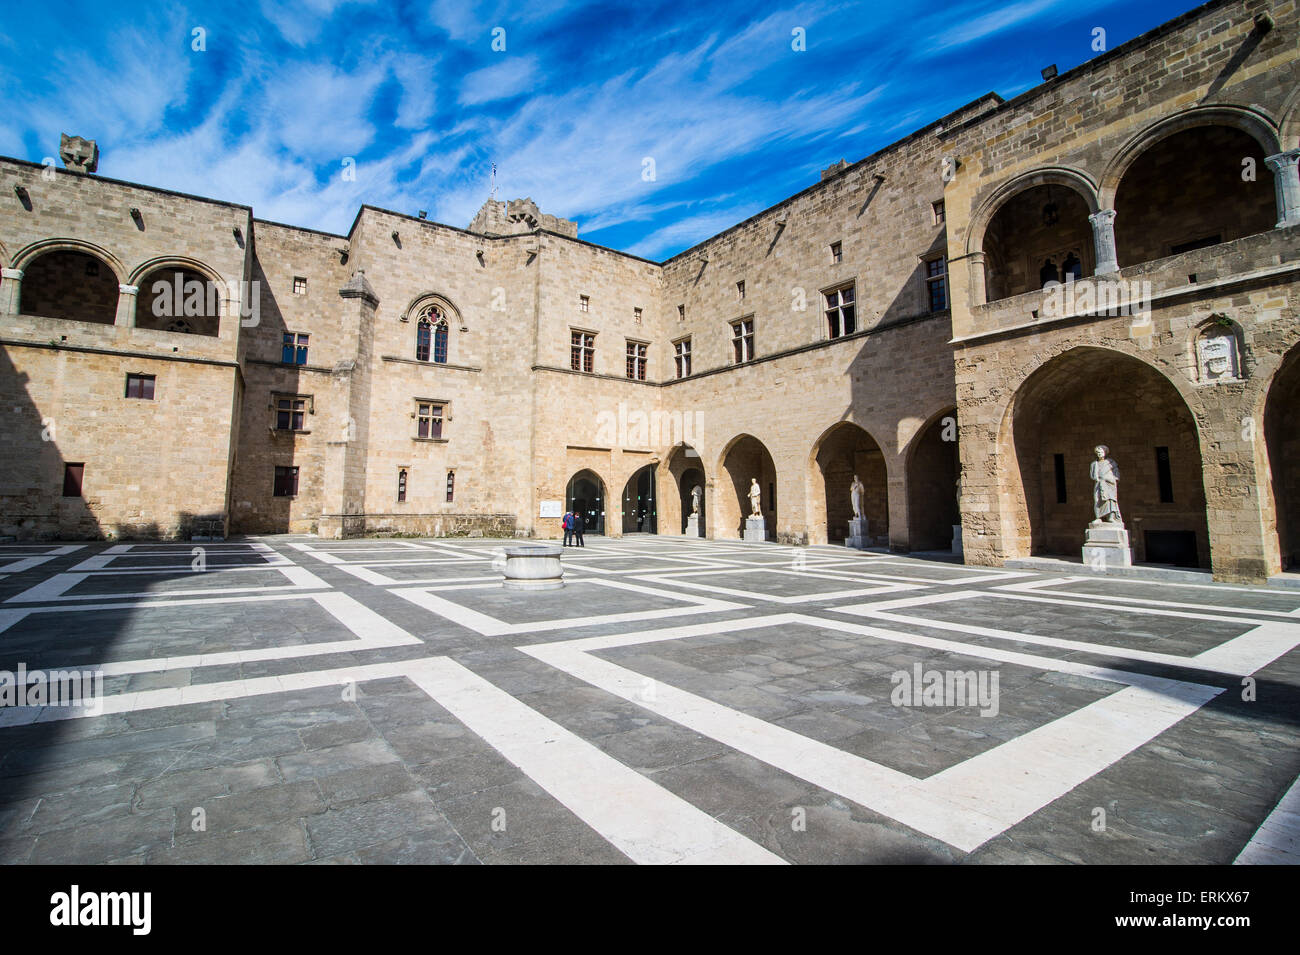 Yard in the Palace of the Grand Master, the Medieval Old Town of the City of Rhodes, Rhodes, Dodecanese Islands, - Stock Image